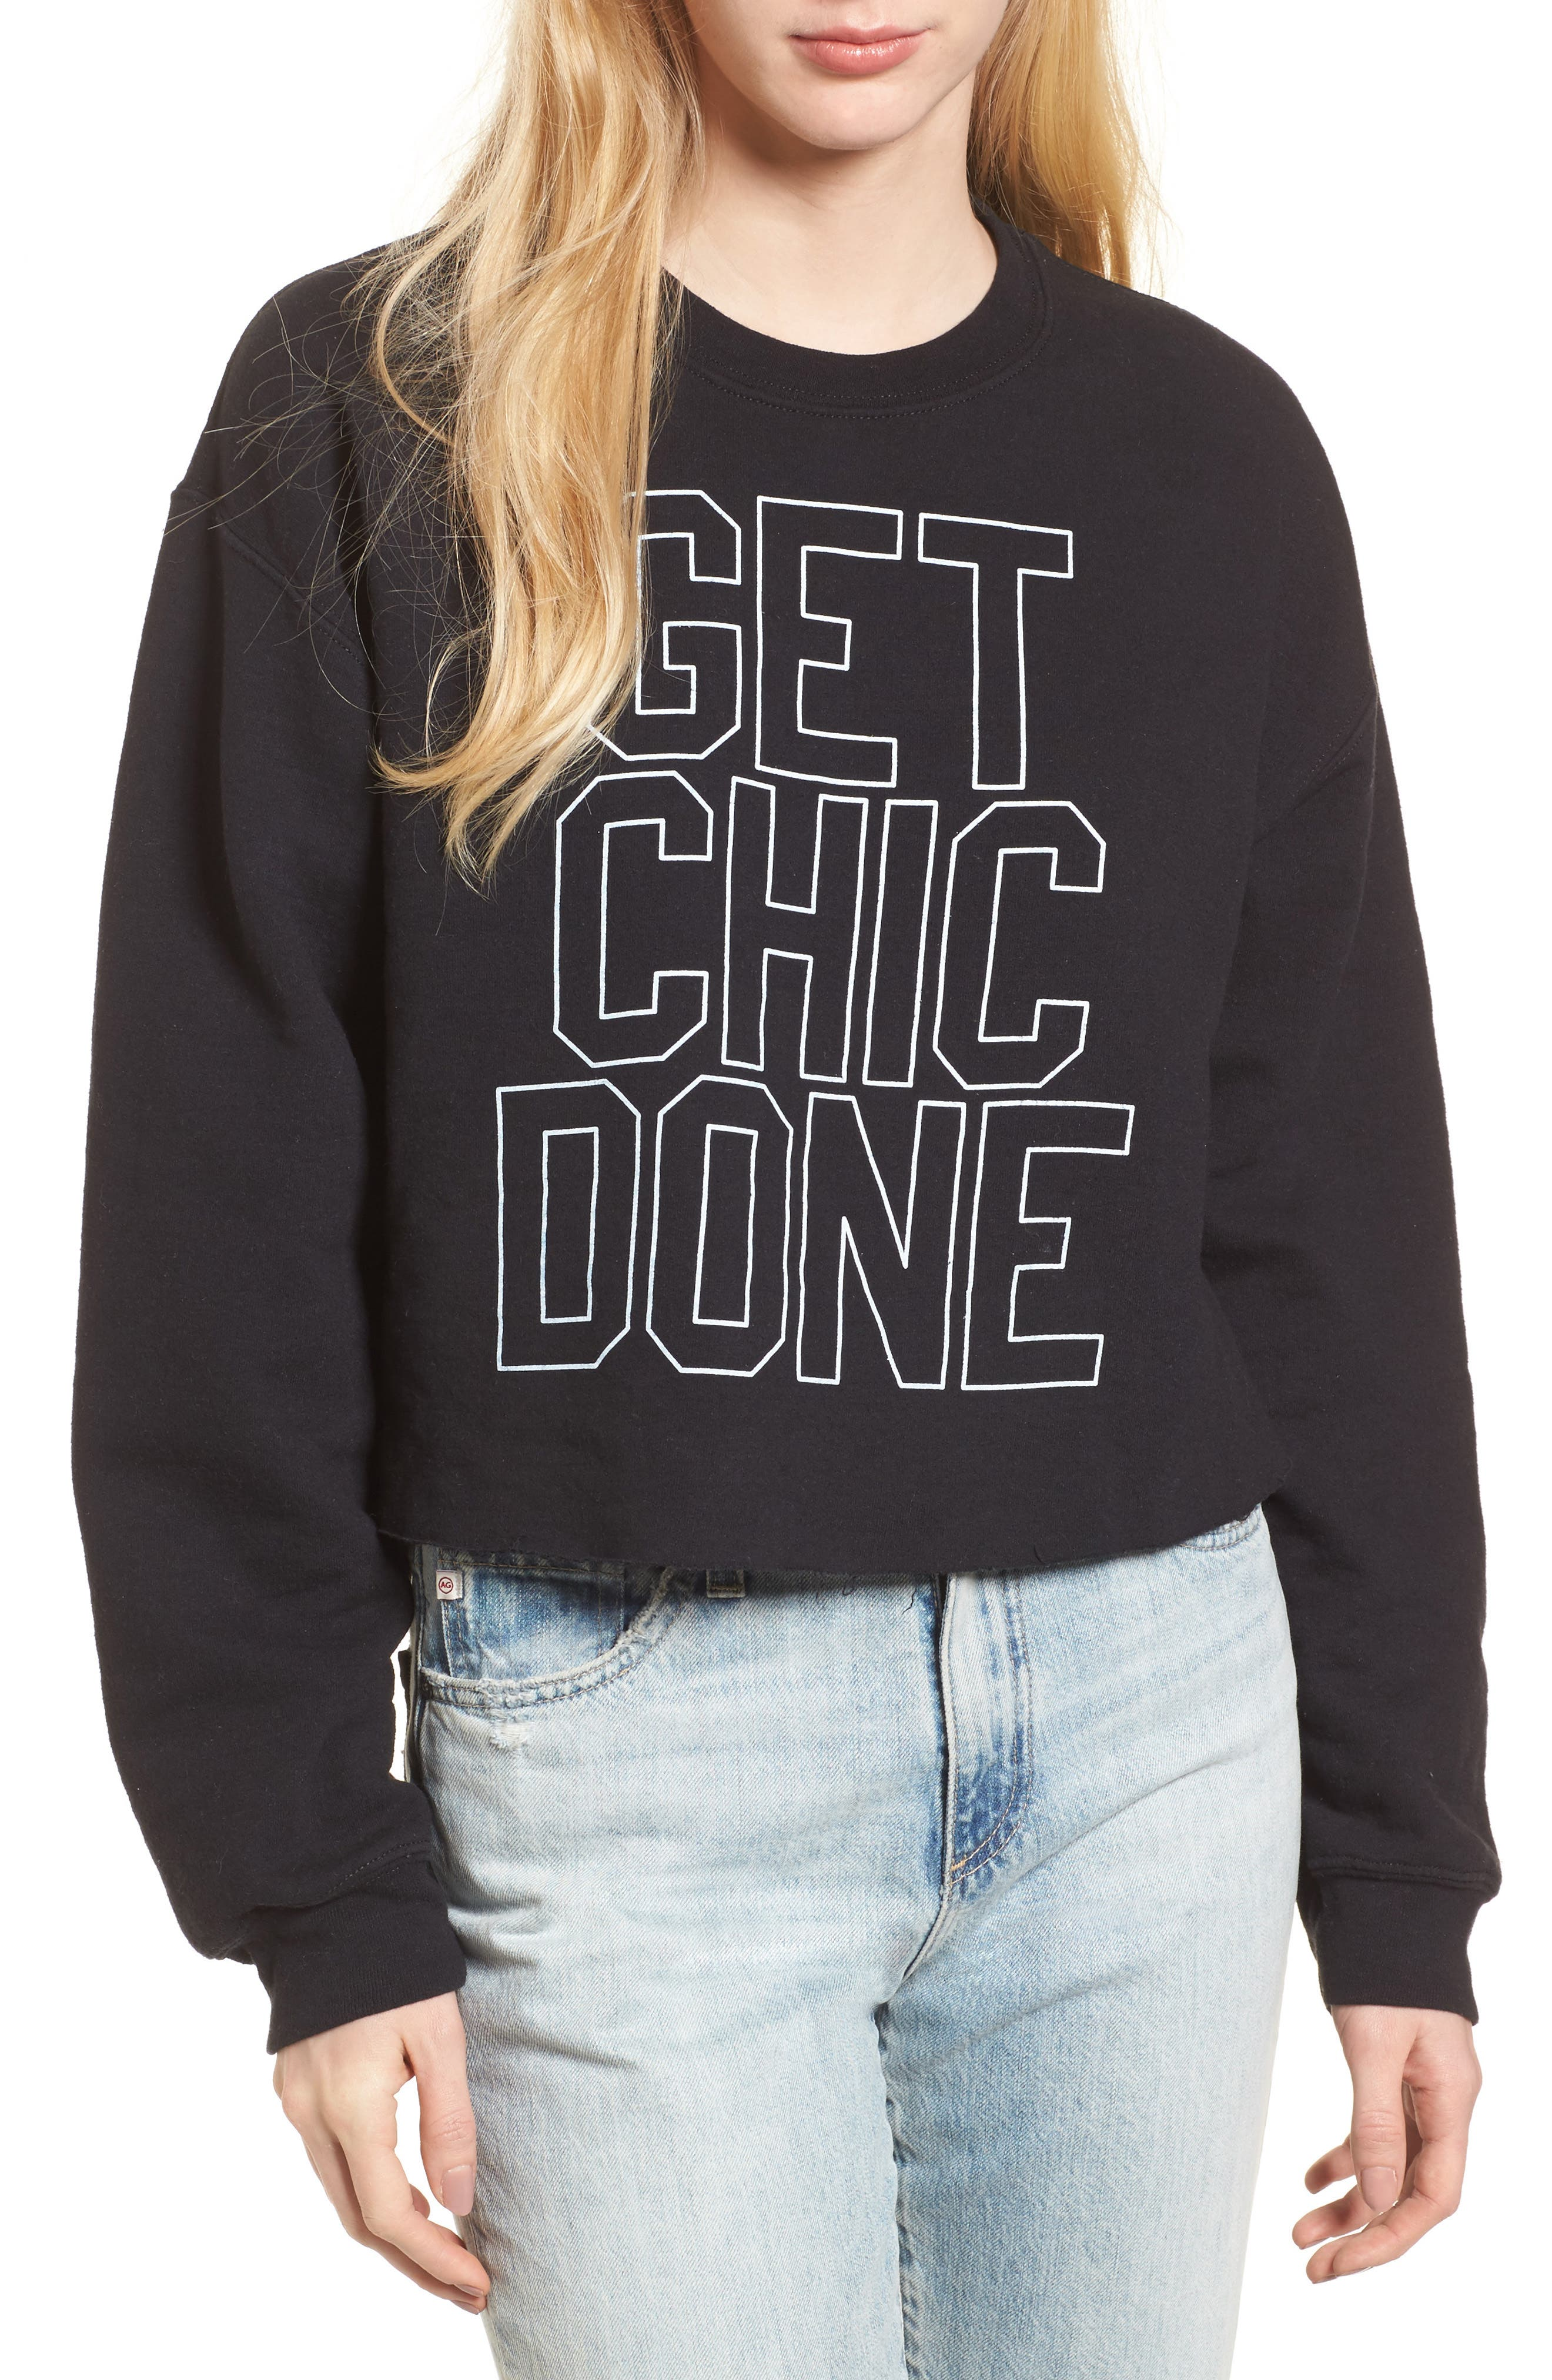 Get Chic Done Sweatshirt,                         Main,                         color, 001